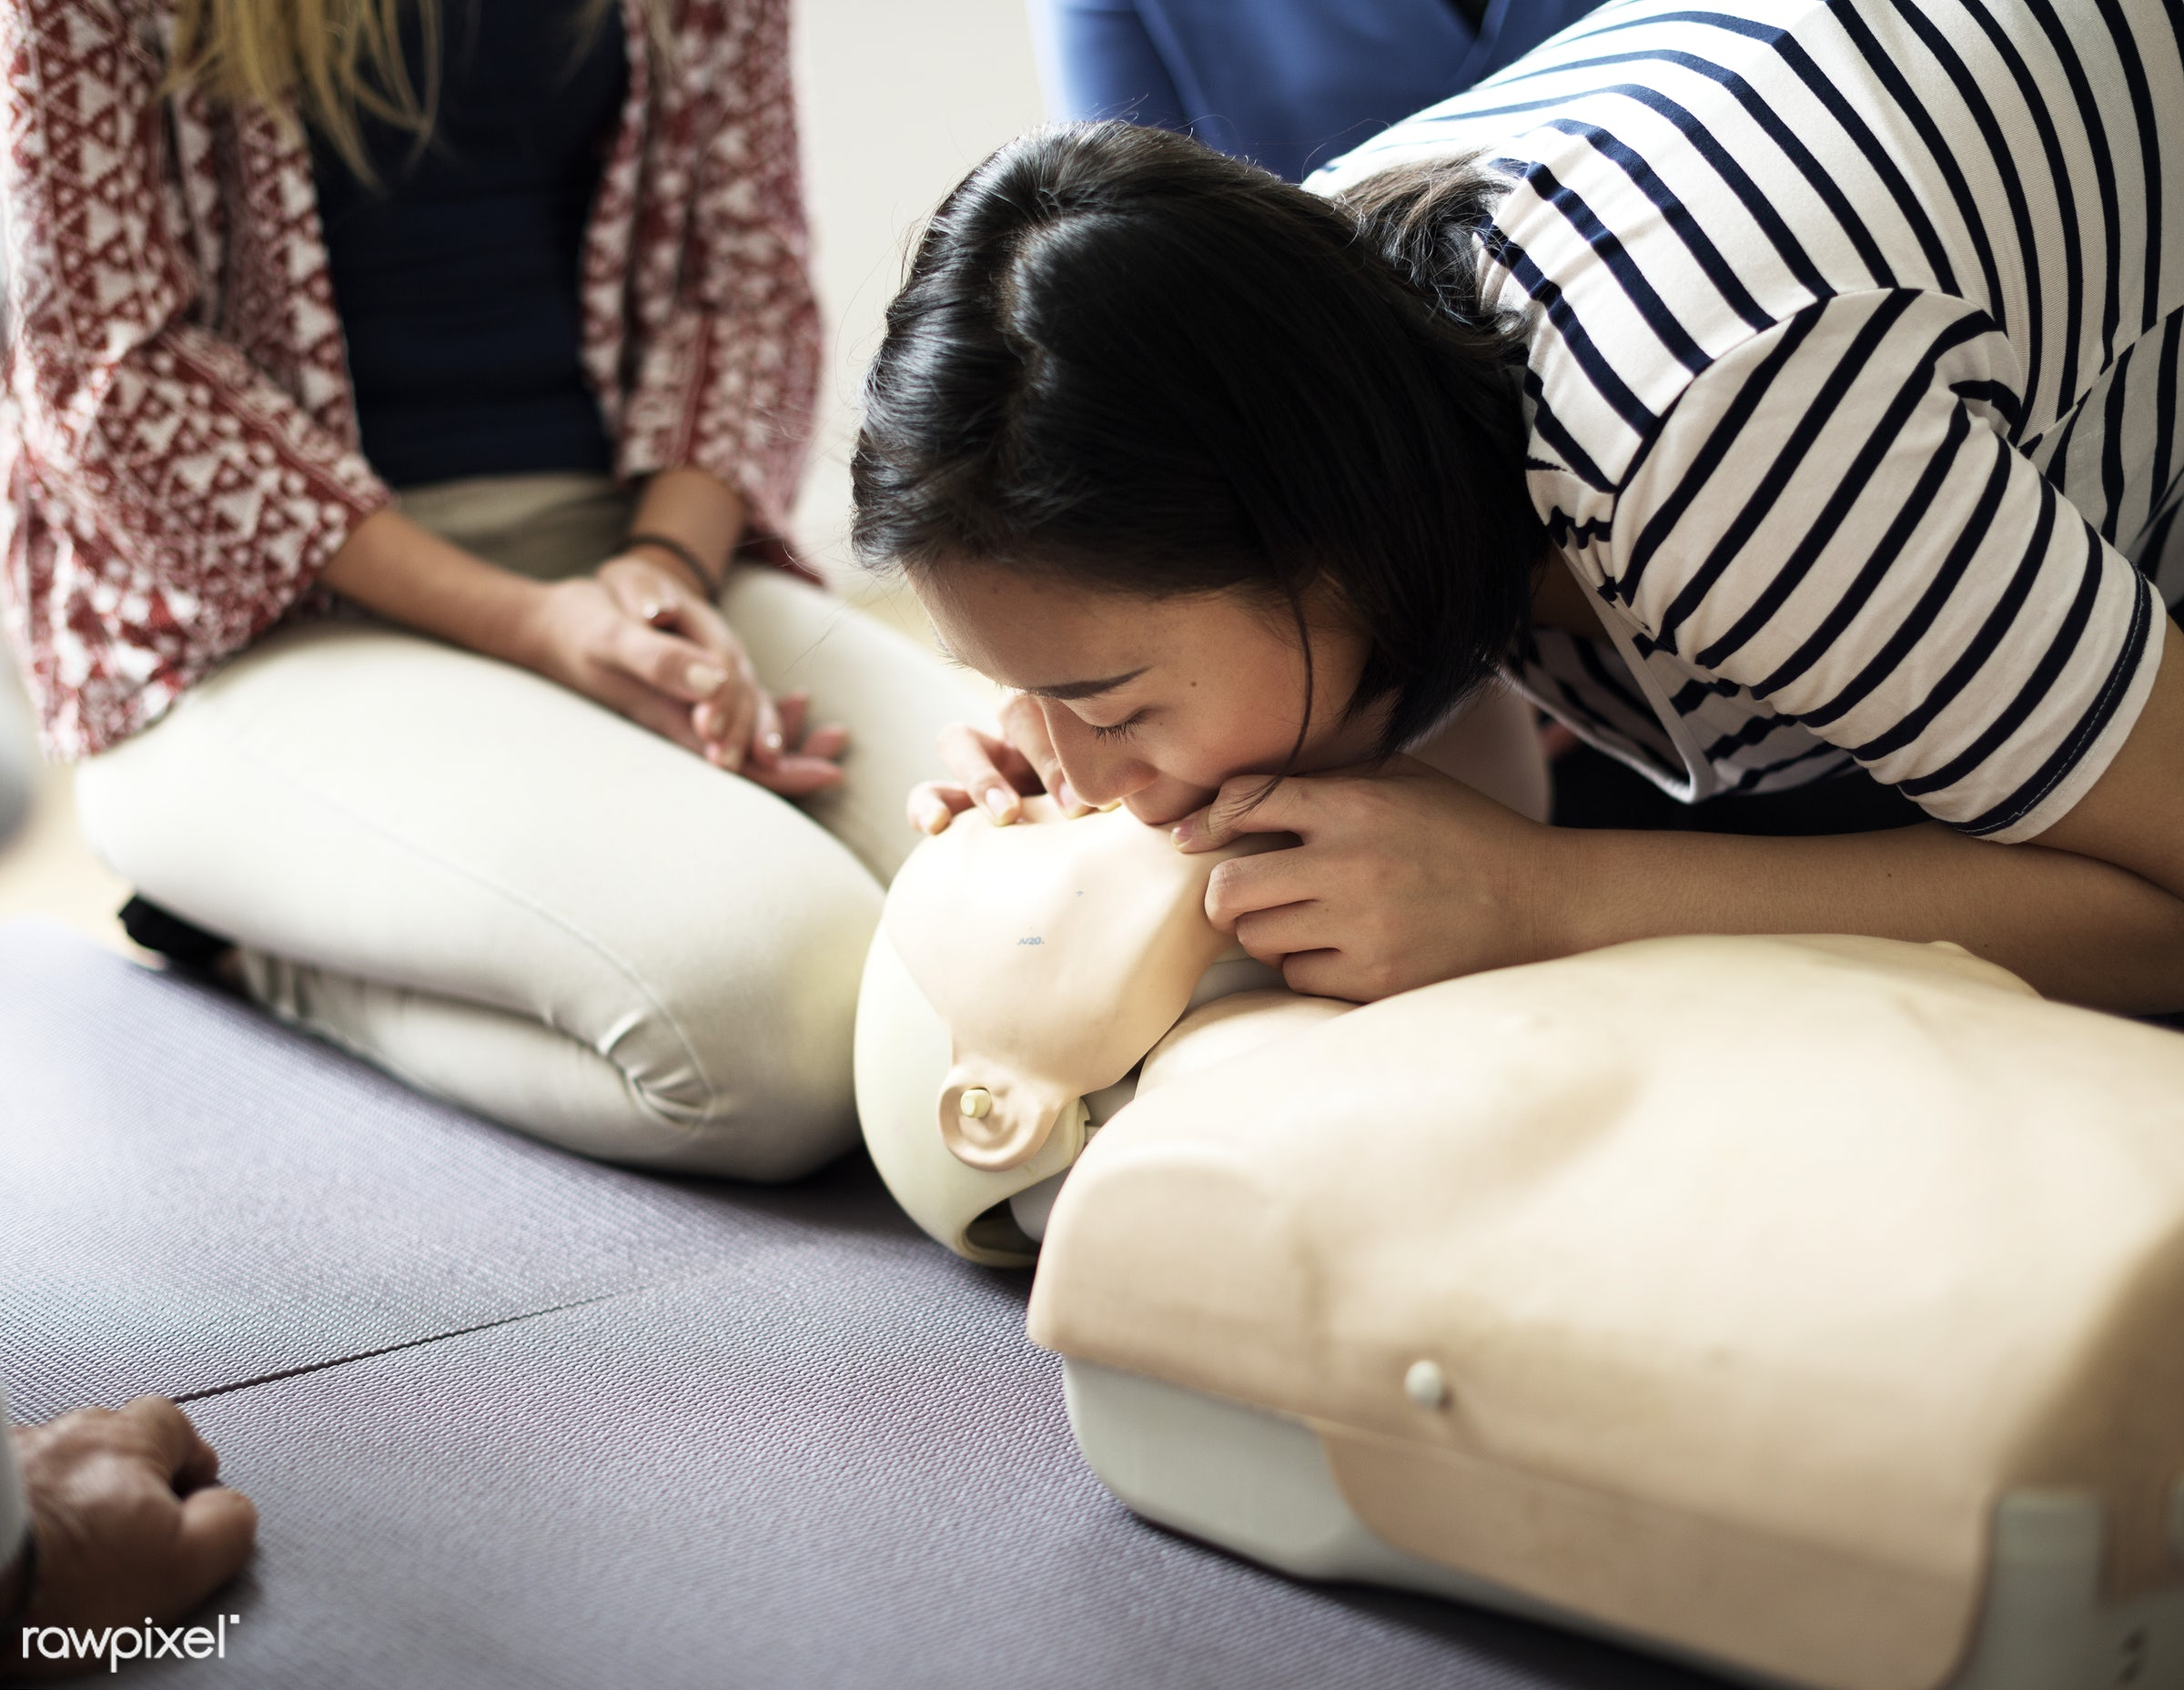 CPR first aid training class - cpr training, person, knowledge, save, first aid, treatment, resuscitation, emergency,...